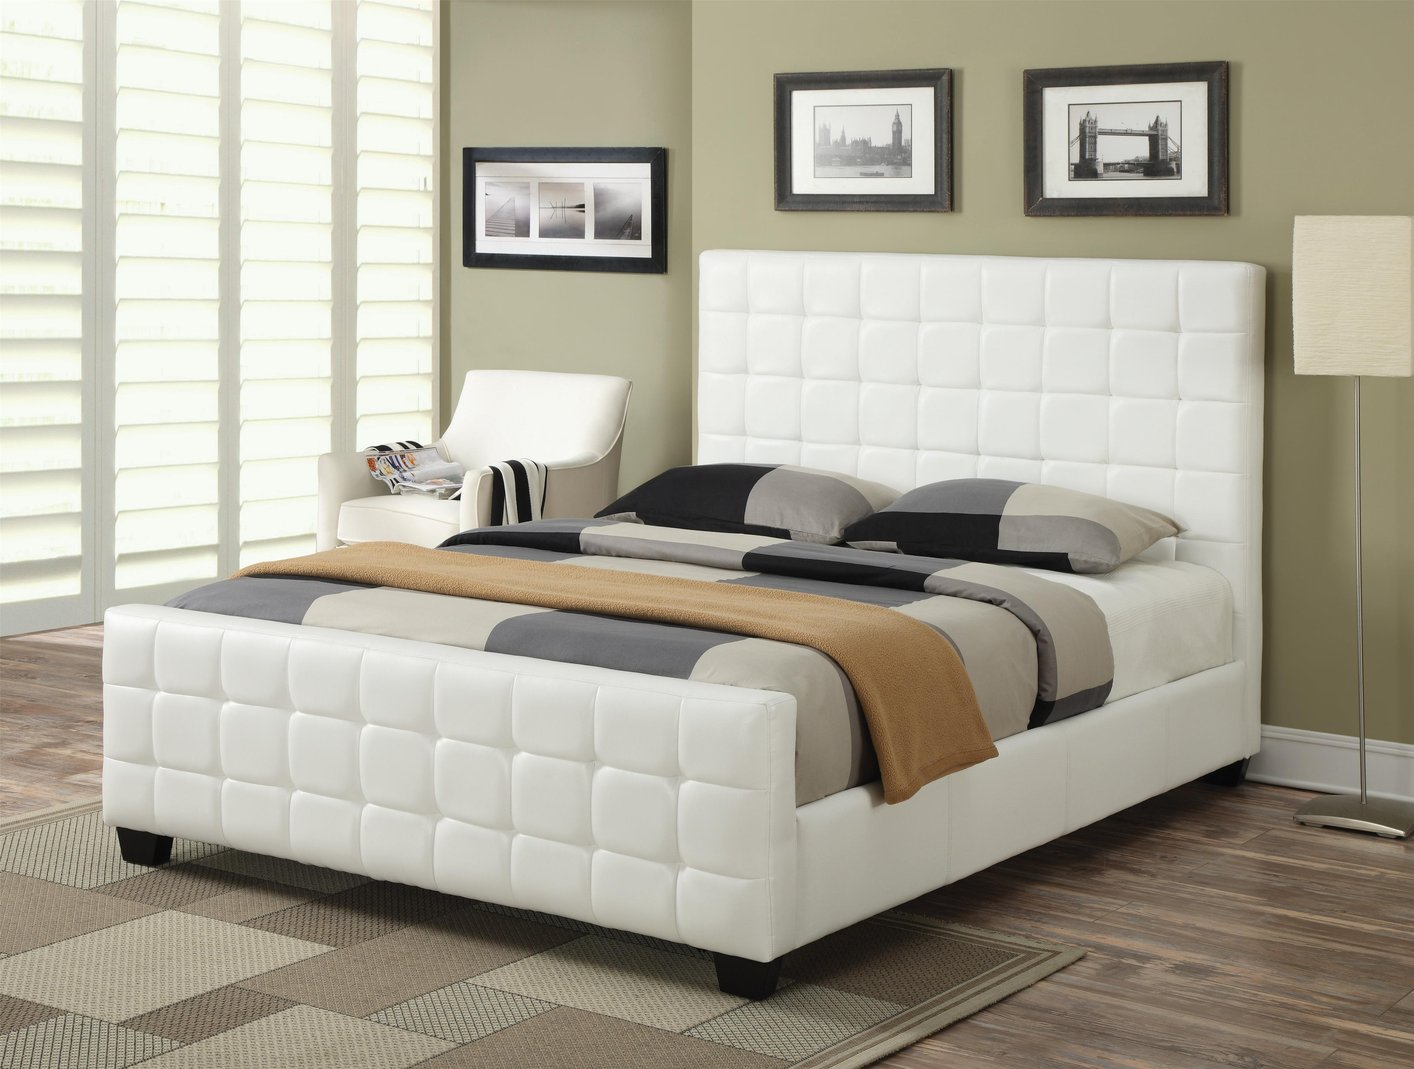 White Leather California King Size Bed